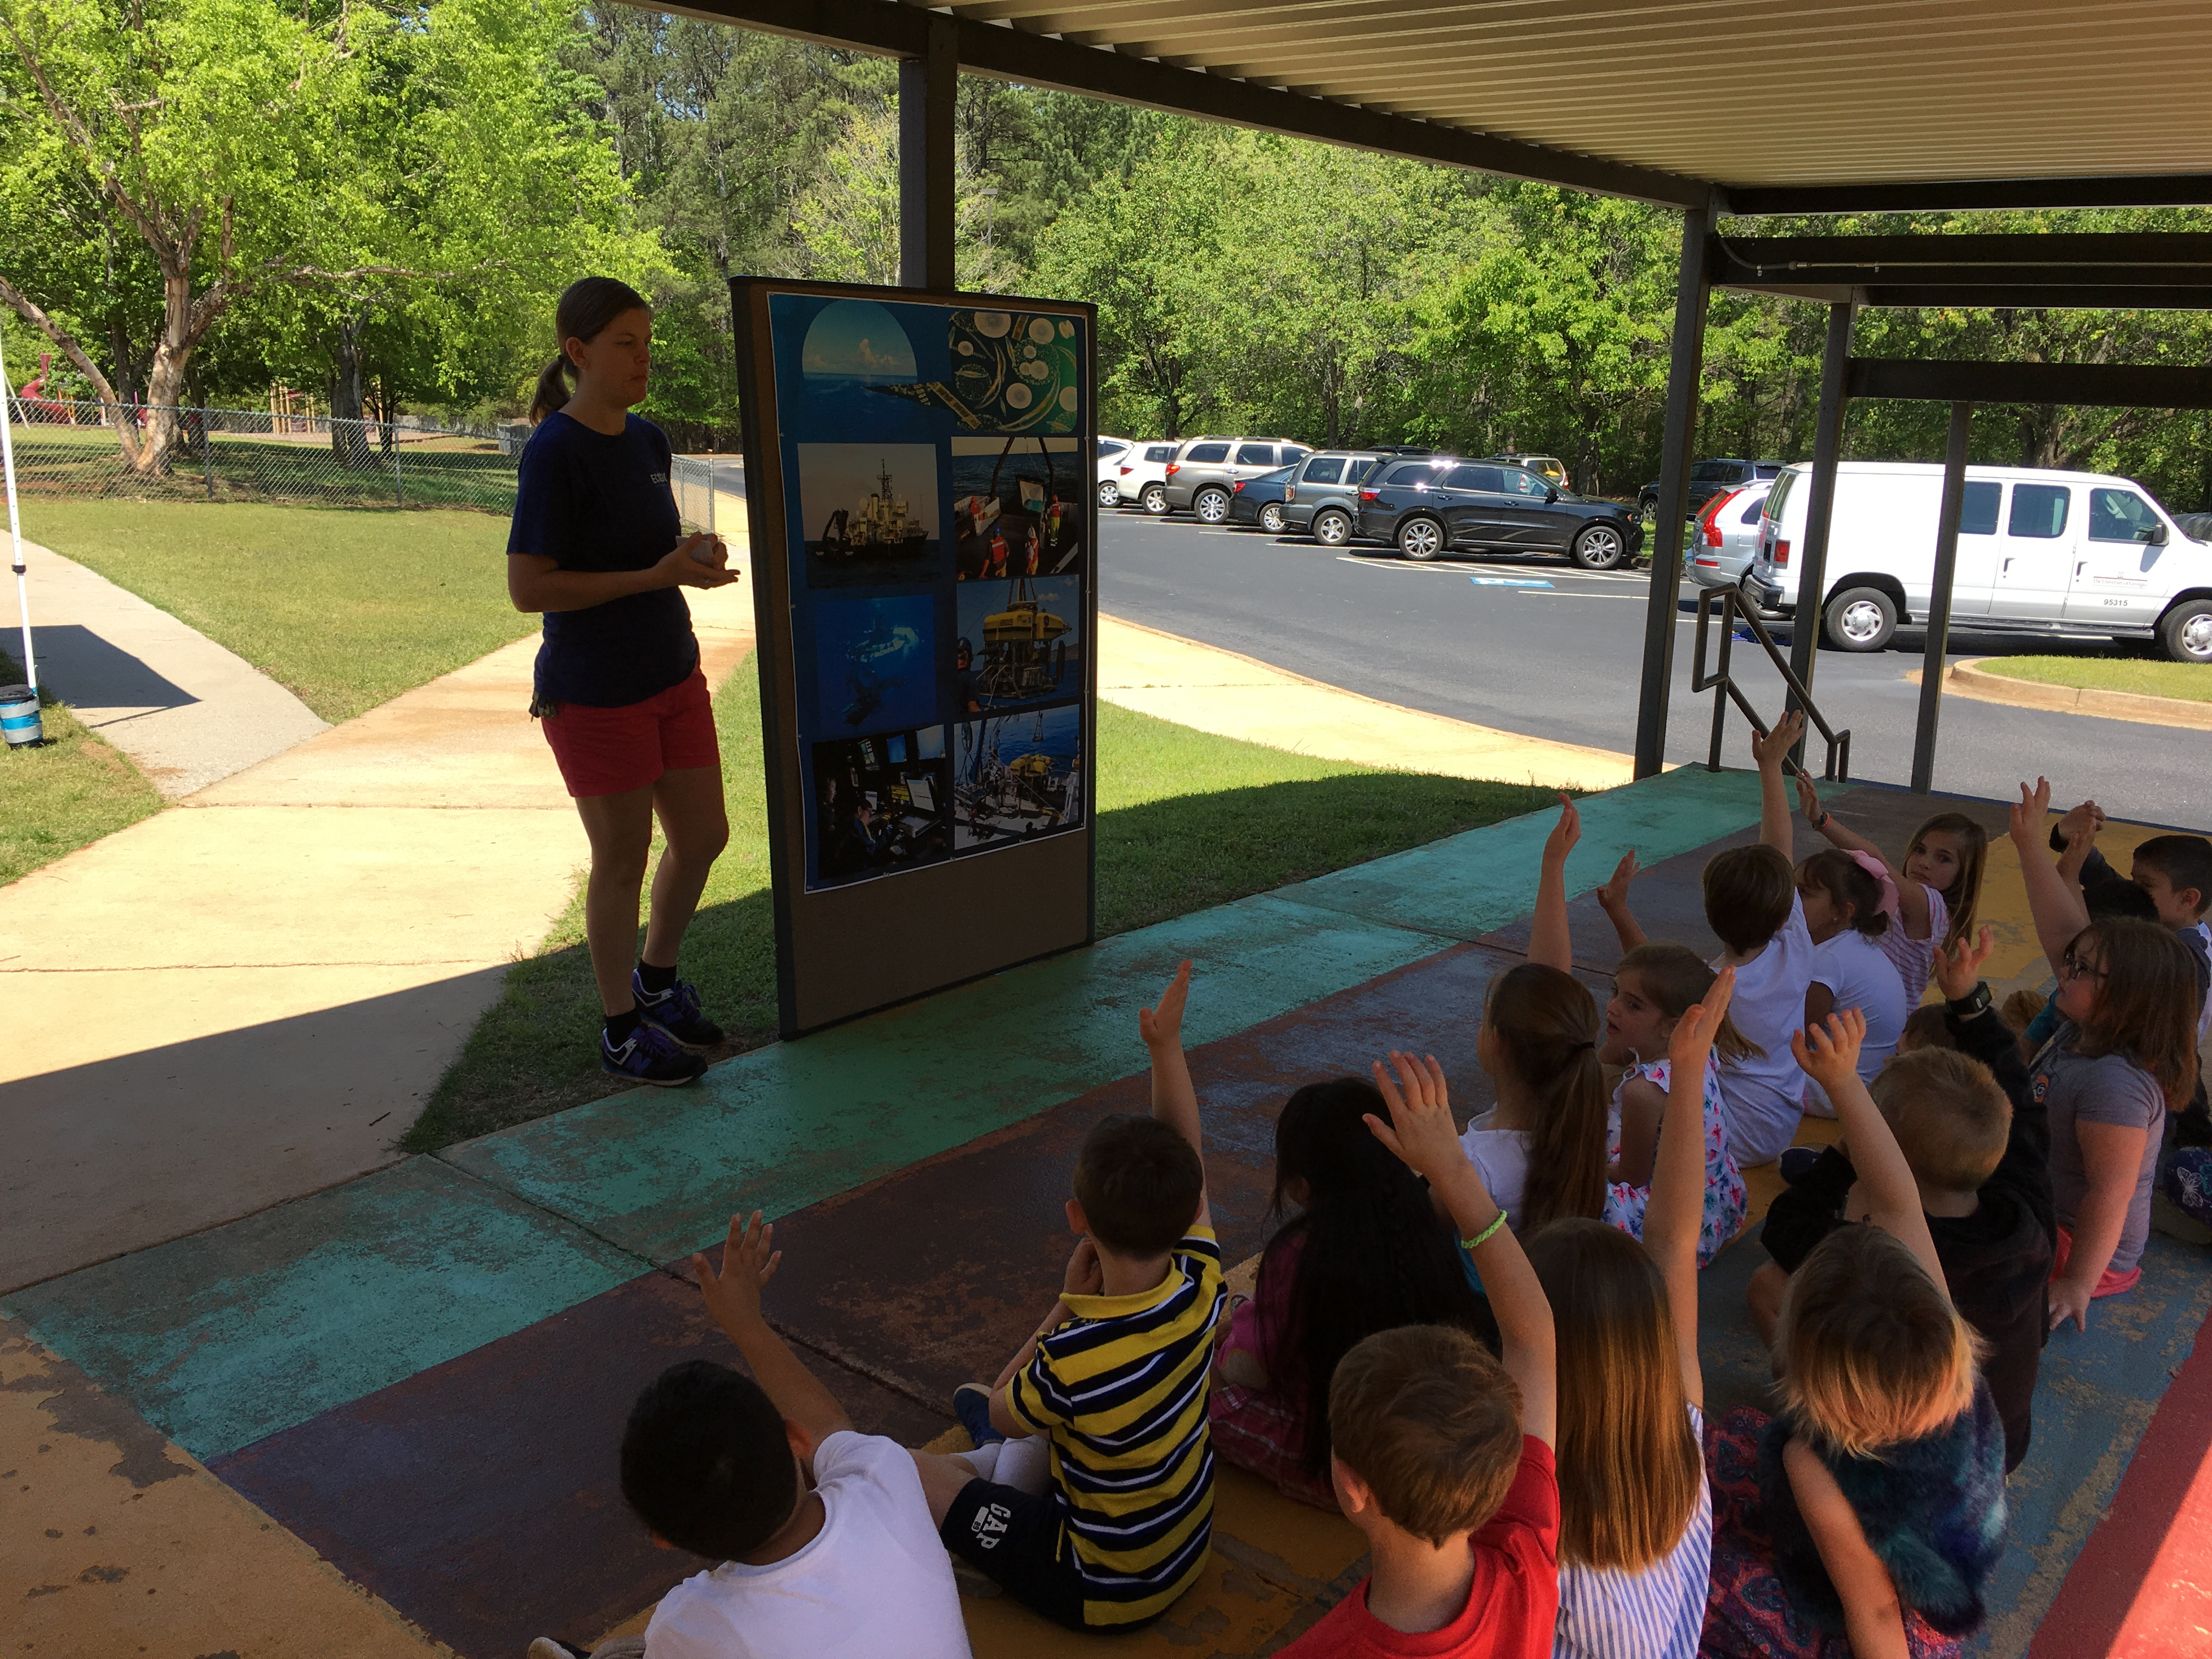 <div style='color:#000000;'><br /><br /><h2>2017 Oconee Primary School. ECOGIG outreach staff visited Oconee Primary for a second year in a row and shared ocean conservation messages with over 200 first & second graders.</h2>(c) ECOGIG</div>